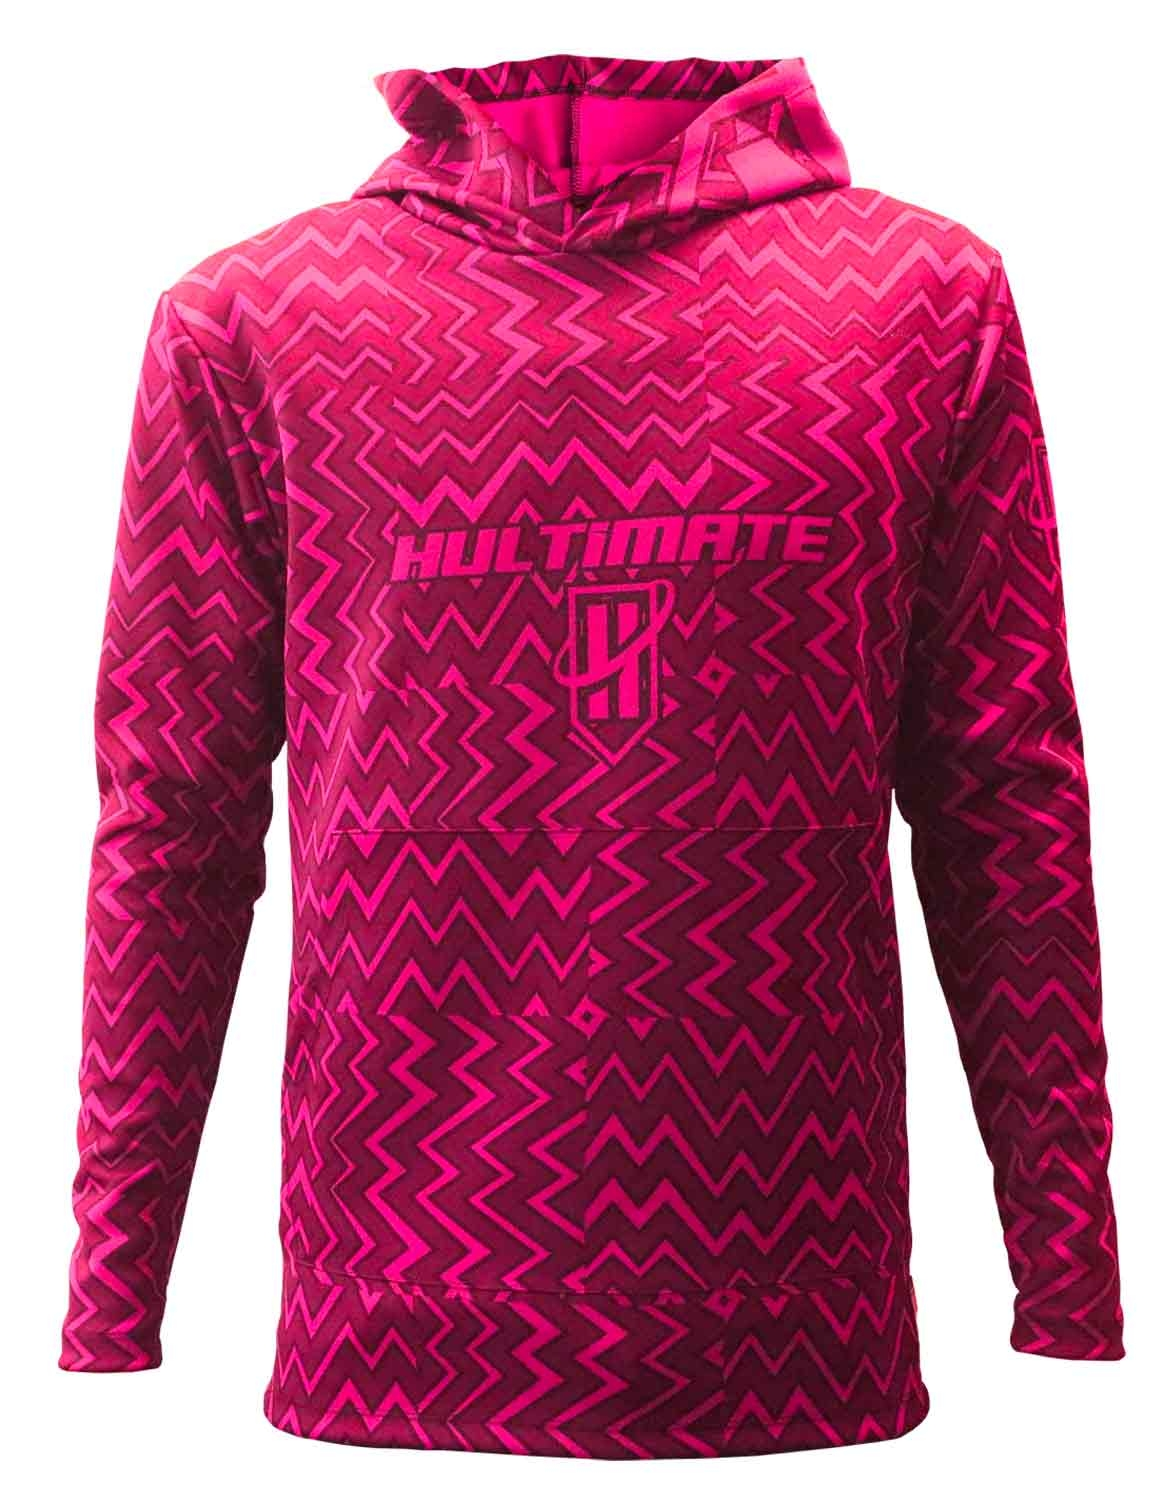 COLLECTION | Hoodie and more | OPTICAL | Hultimate Sportswear